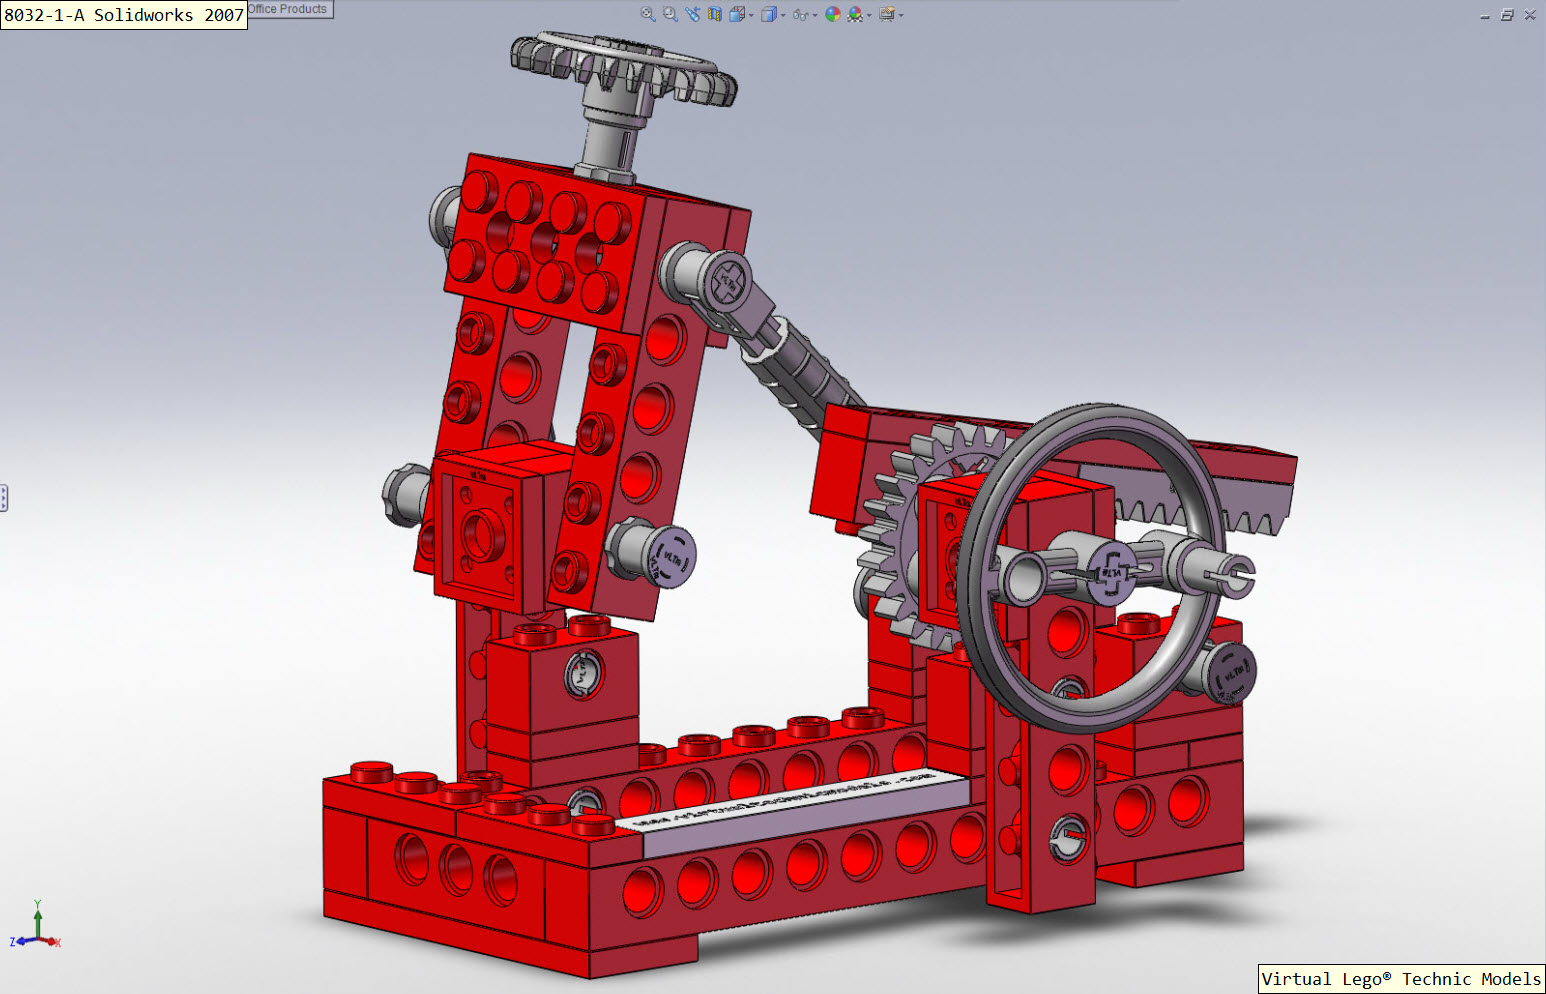 8032-1-a-03-solidworks_2007.jpg